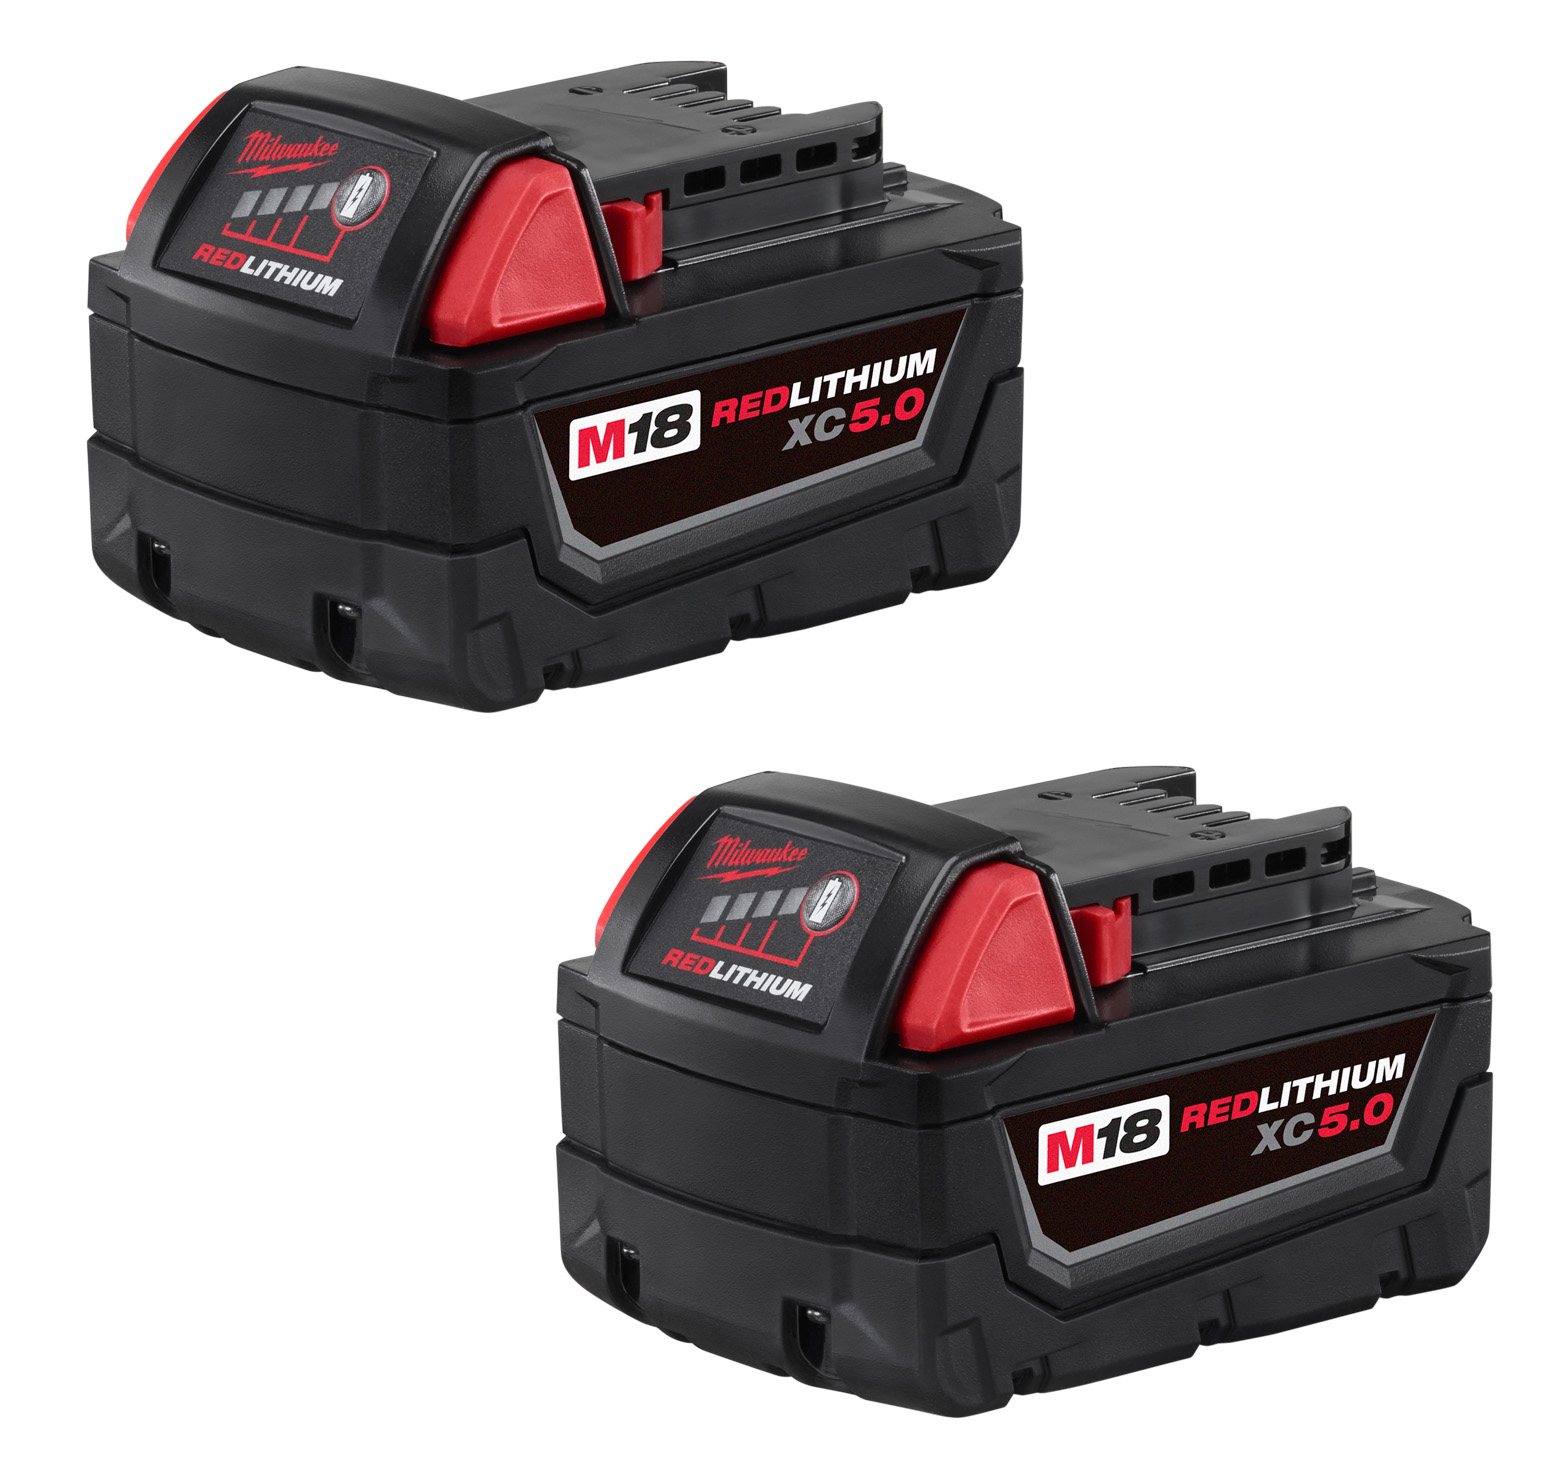 Milwaukee® M18™ REDLITHIUM™ 48-11-1852 Rechargeable Cordless Battery Pack, 5 Ah Lithium-Ion Battery, 18 VDC Charge, For Use With Milwaukee® M18™ Cordless Power Tool